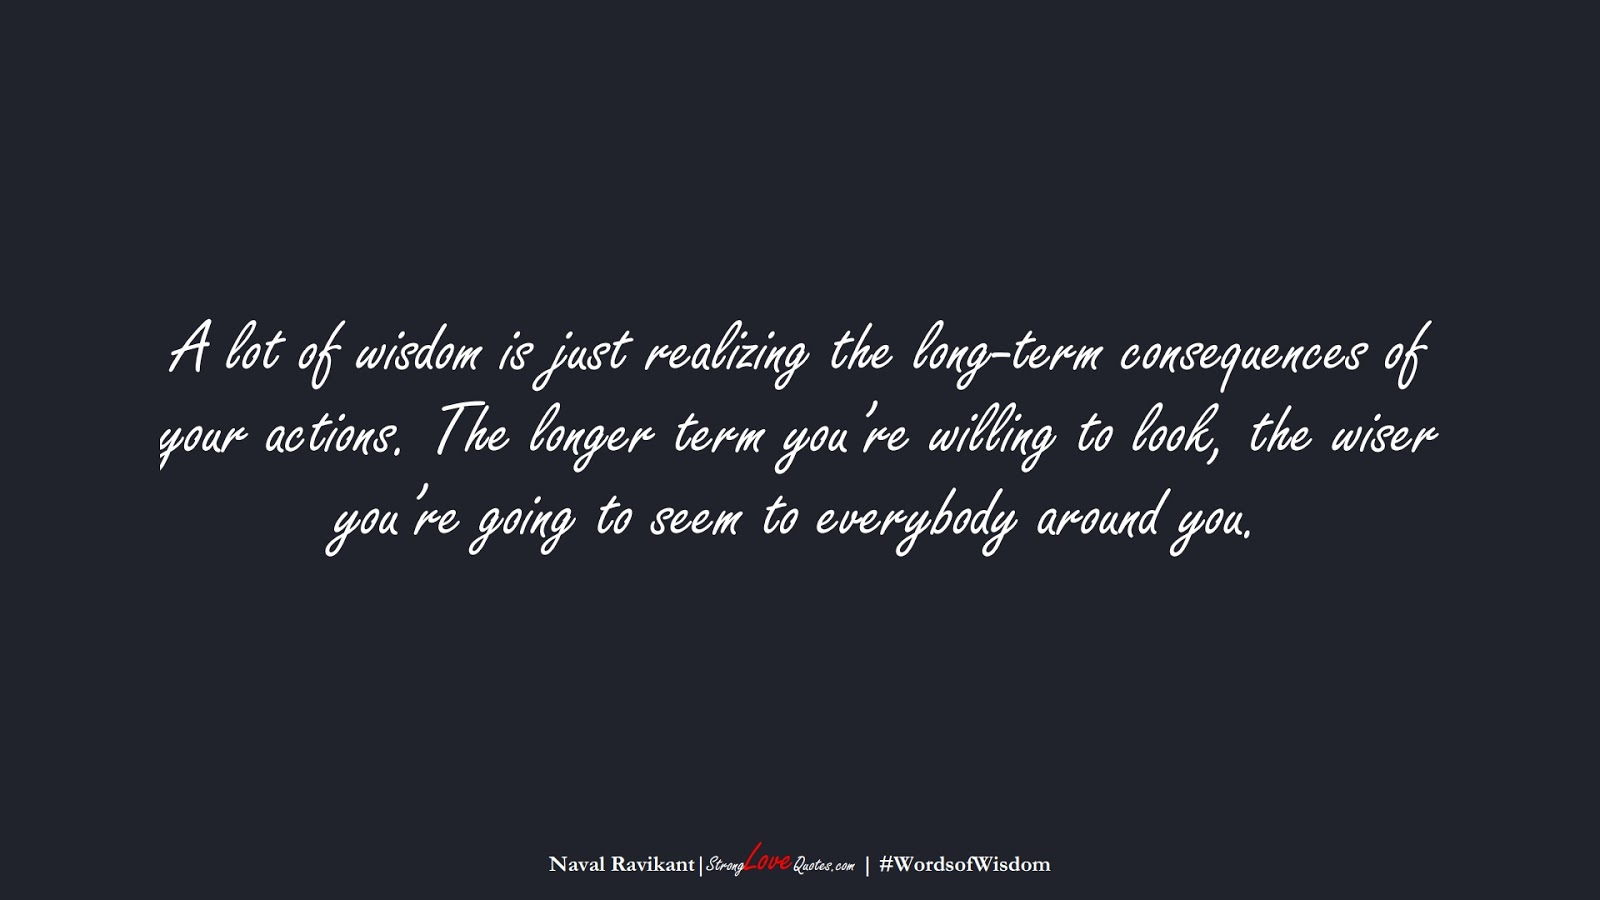 A lot of wisdom is just realizing the long-term consequences of your actions. The longer term you're willing to look, the wiser you're going to seem to everybody around you. (Naval Ravikant);  #WordsofWisdom